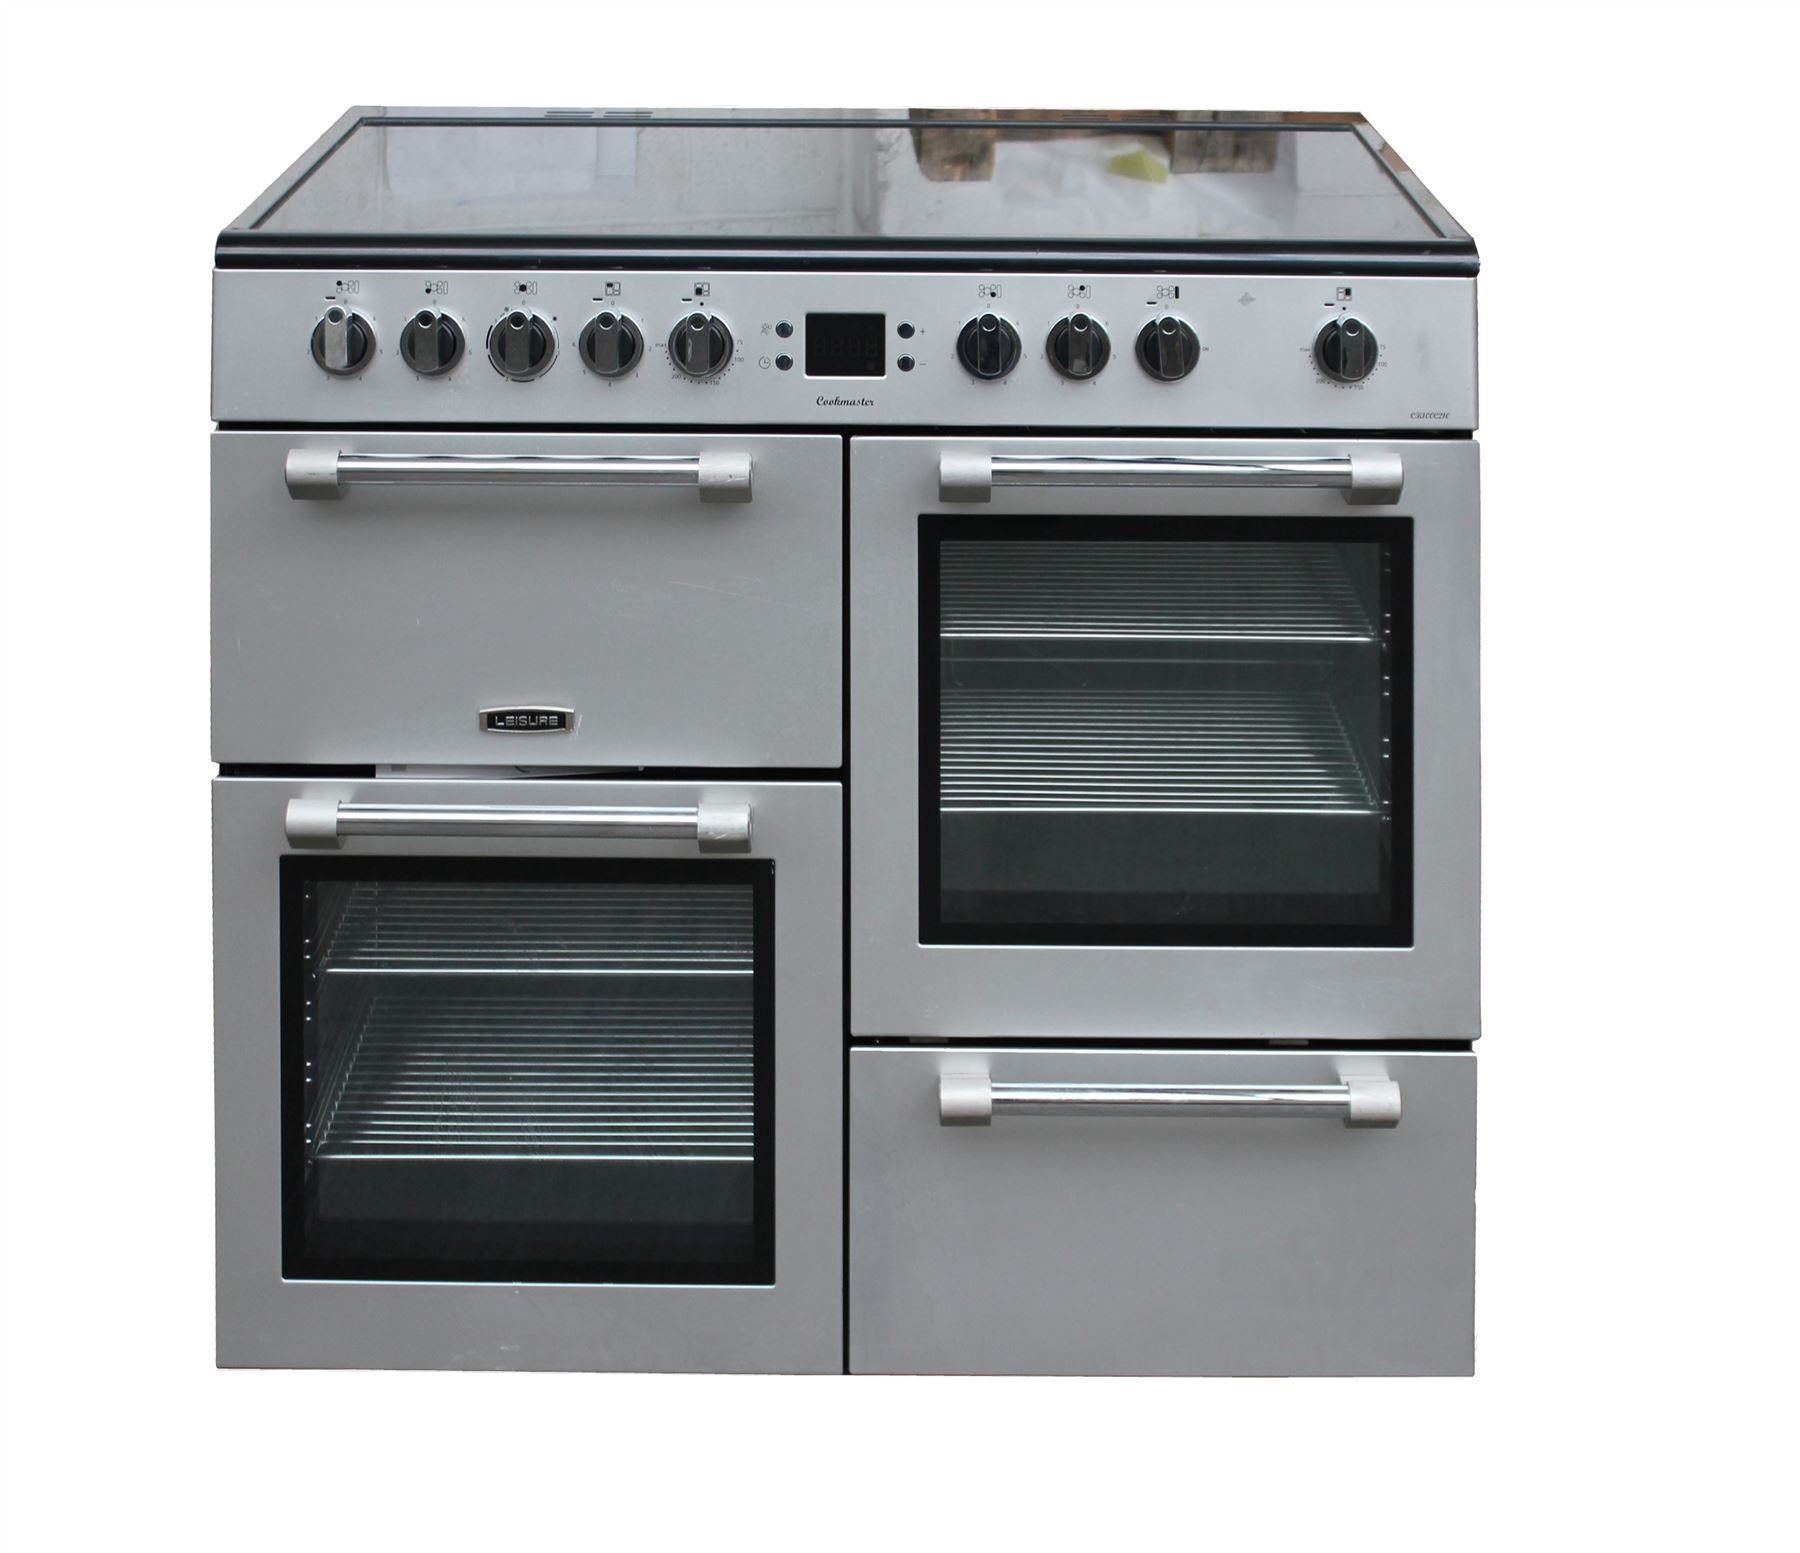 Leisure Electric Range Cooker 100 Cm Ceramic Double Oven